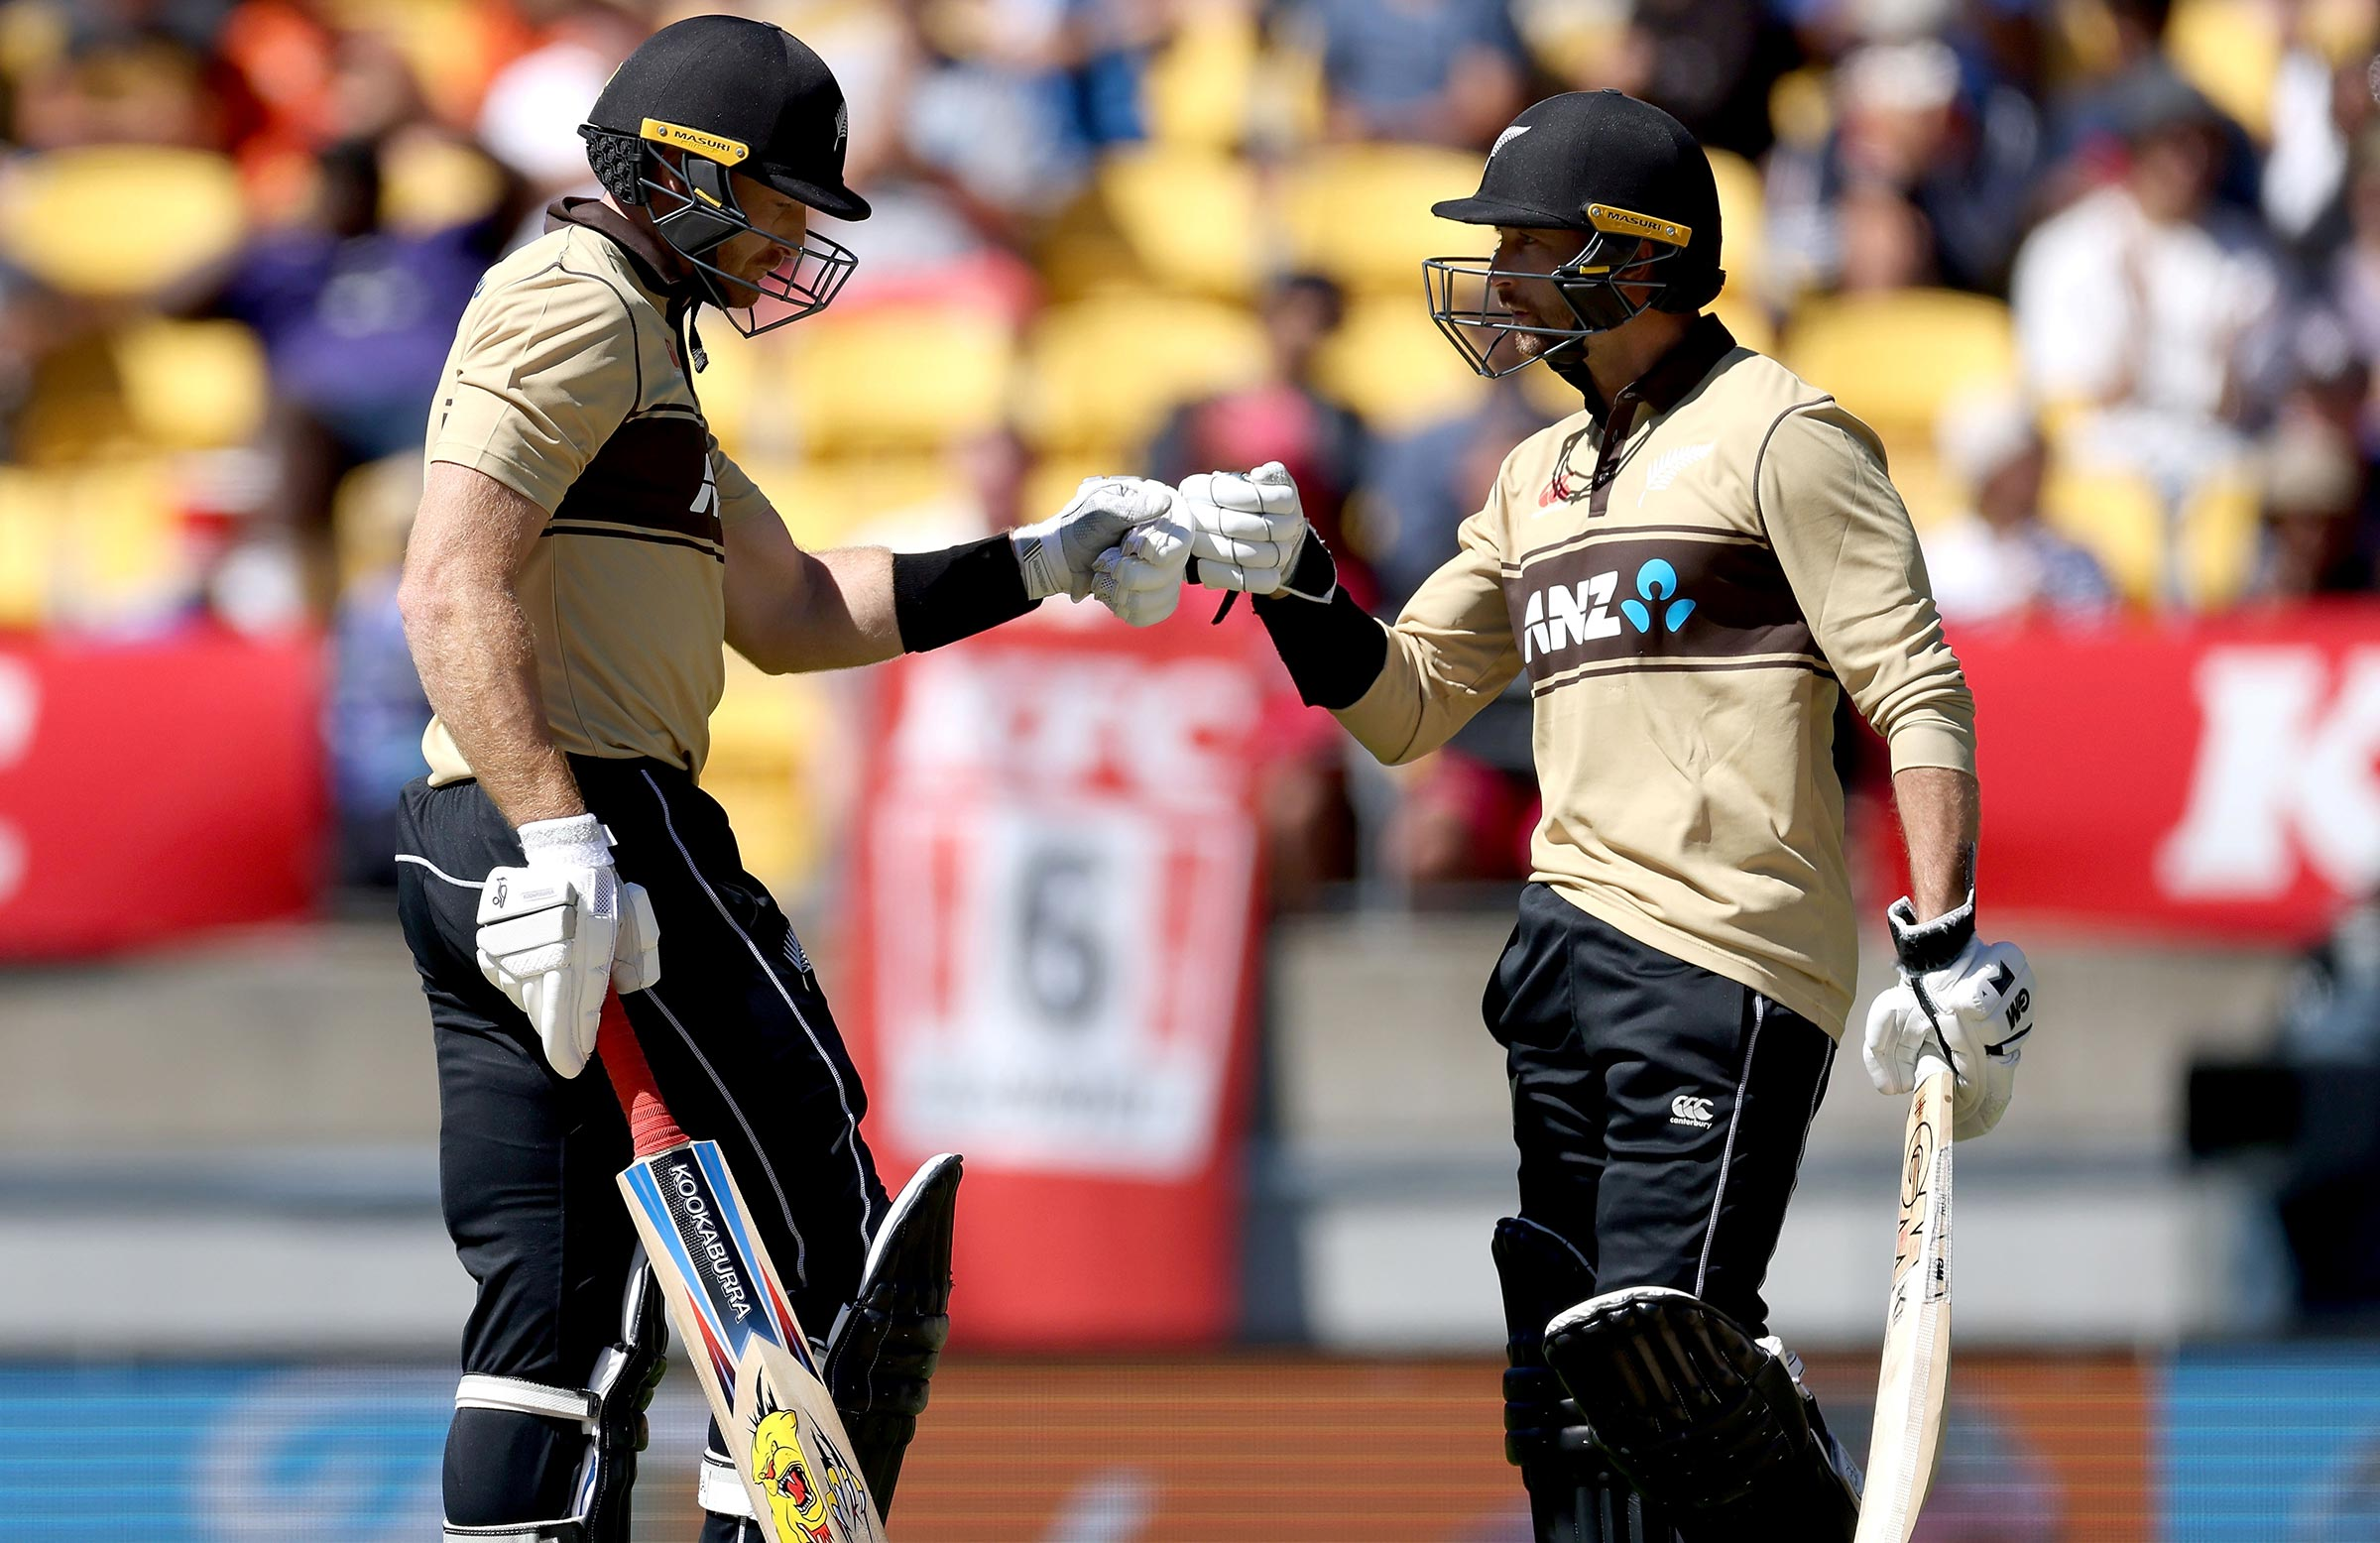 Guptill and Conway put on 106 for the first wicket // Getty